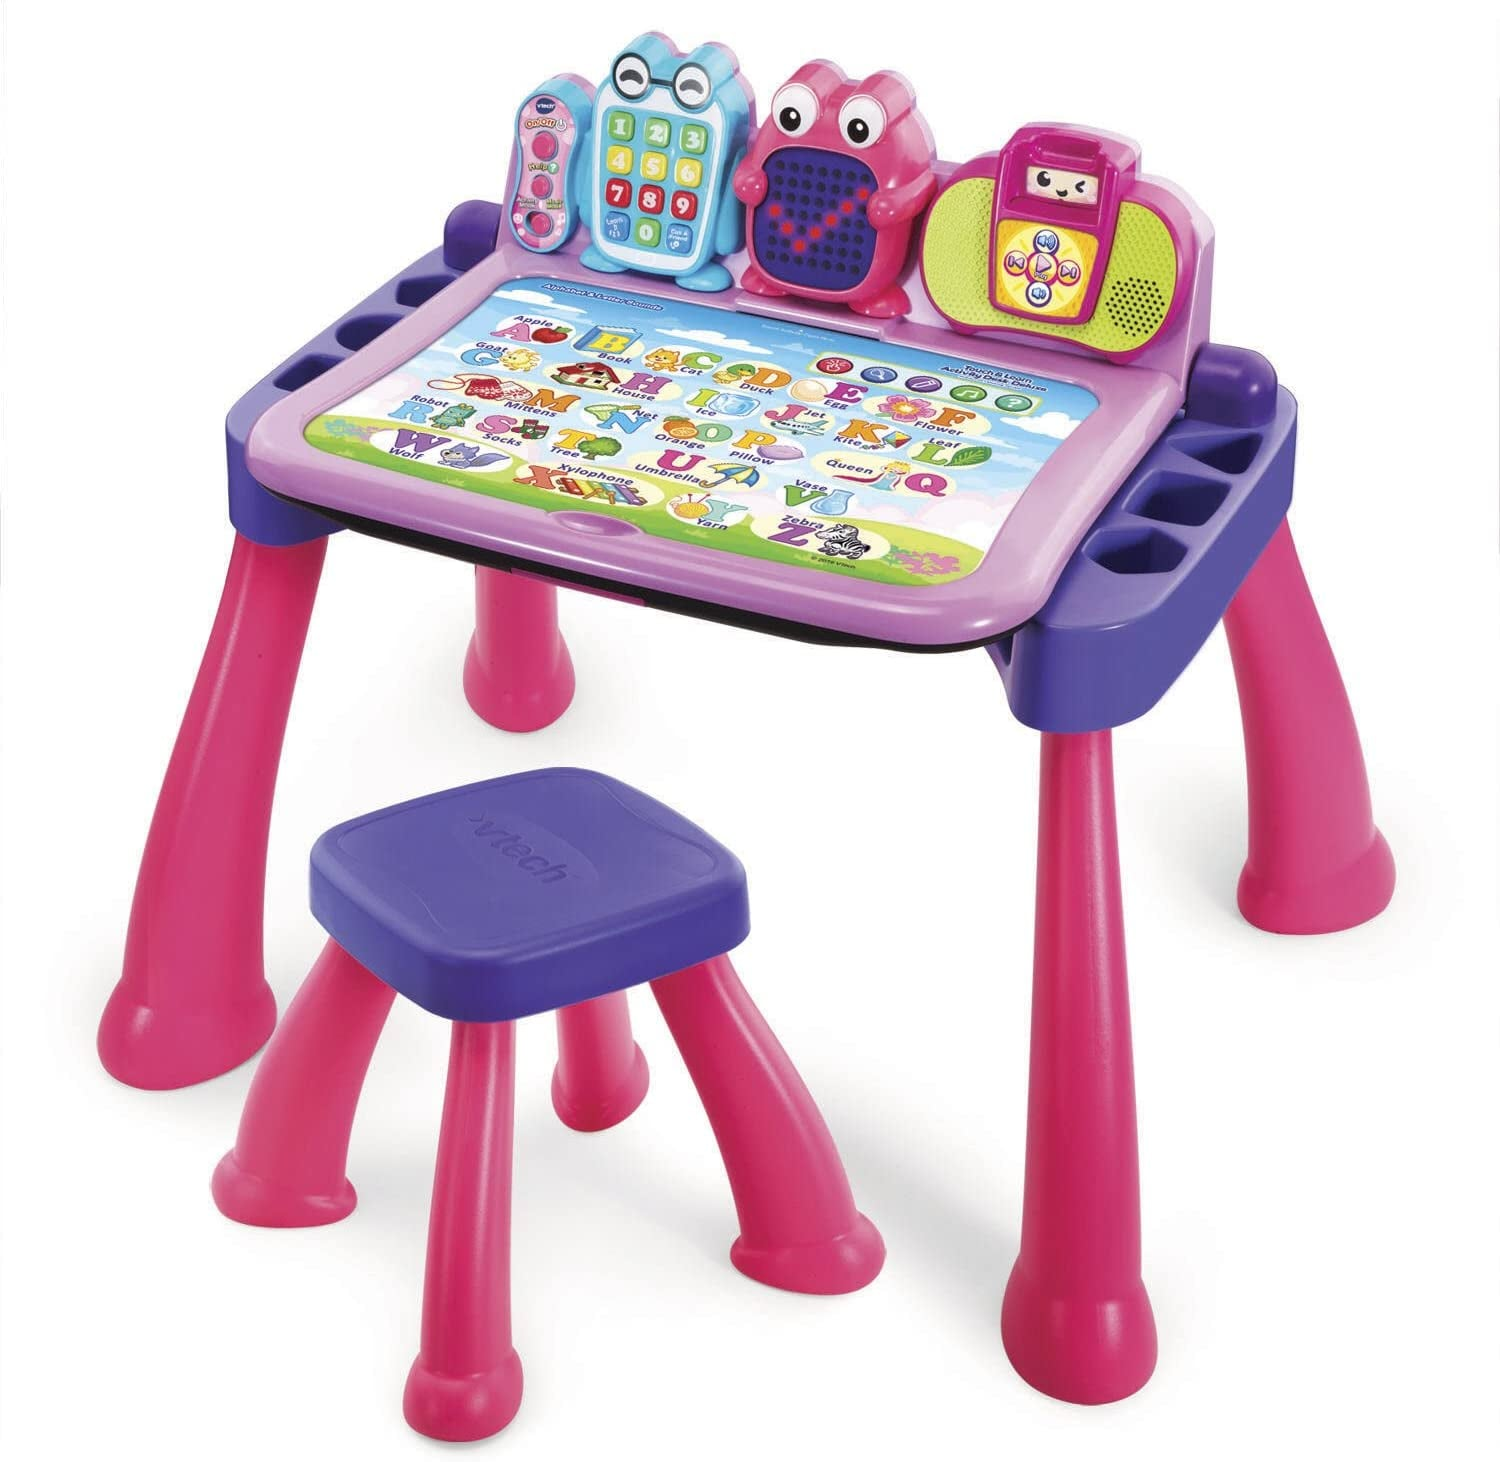 The Best Toys And Gift Ideas For 3 Year Olds In 2020 Popsugar Family